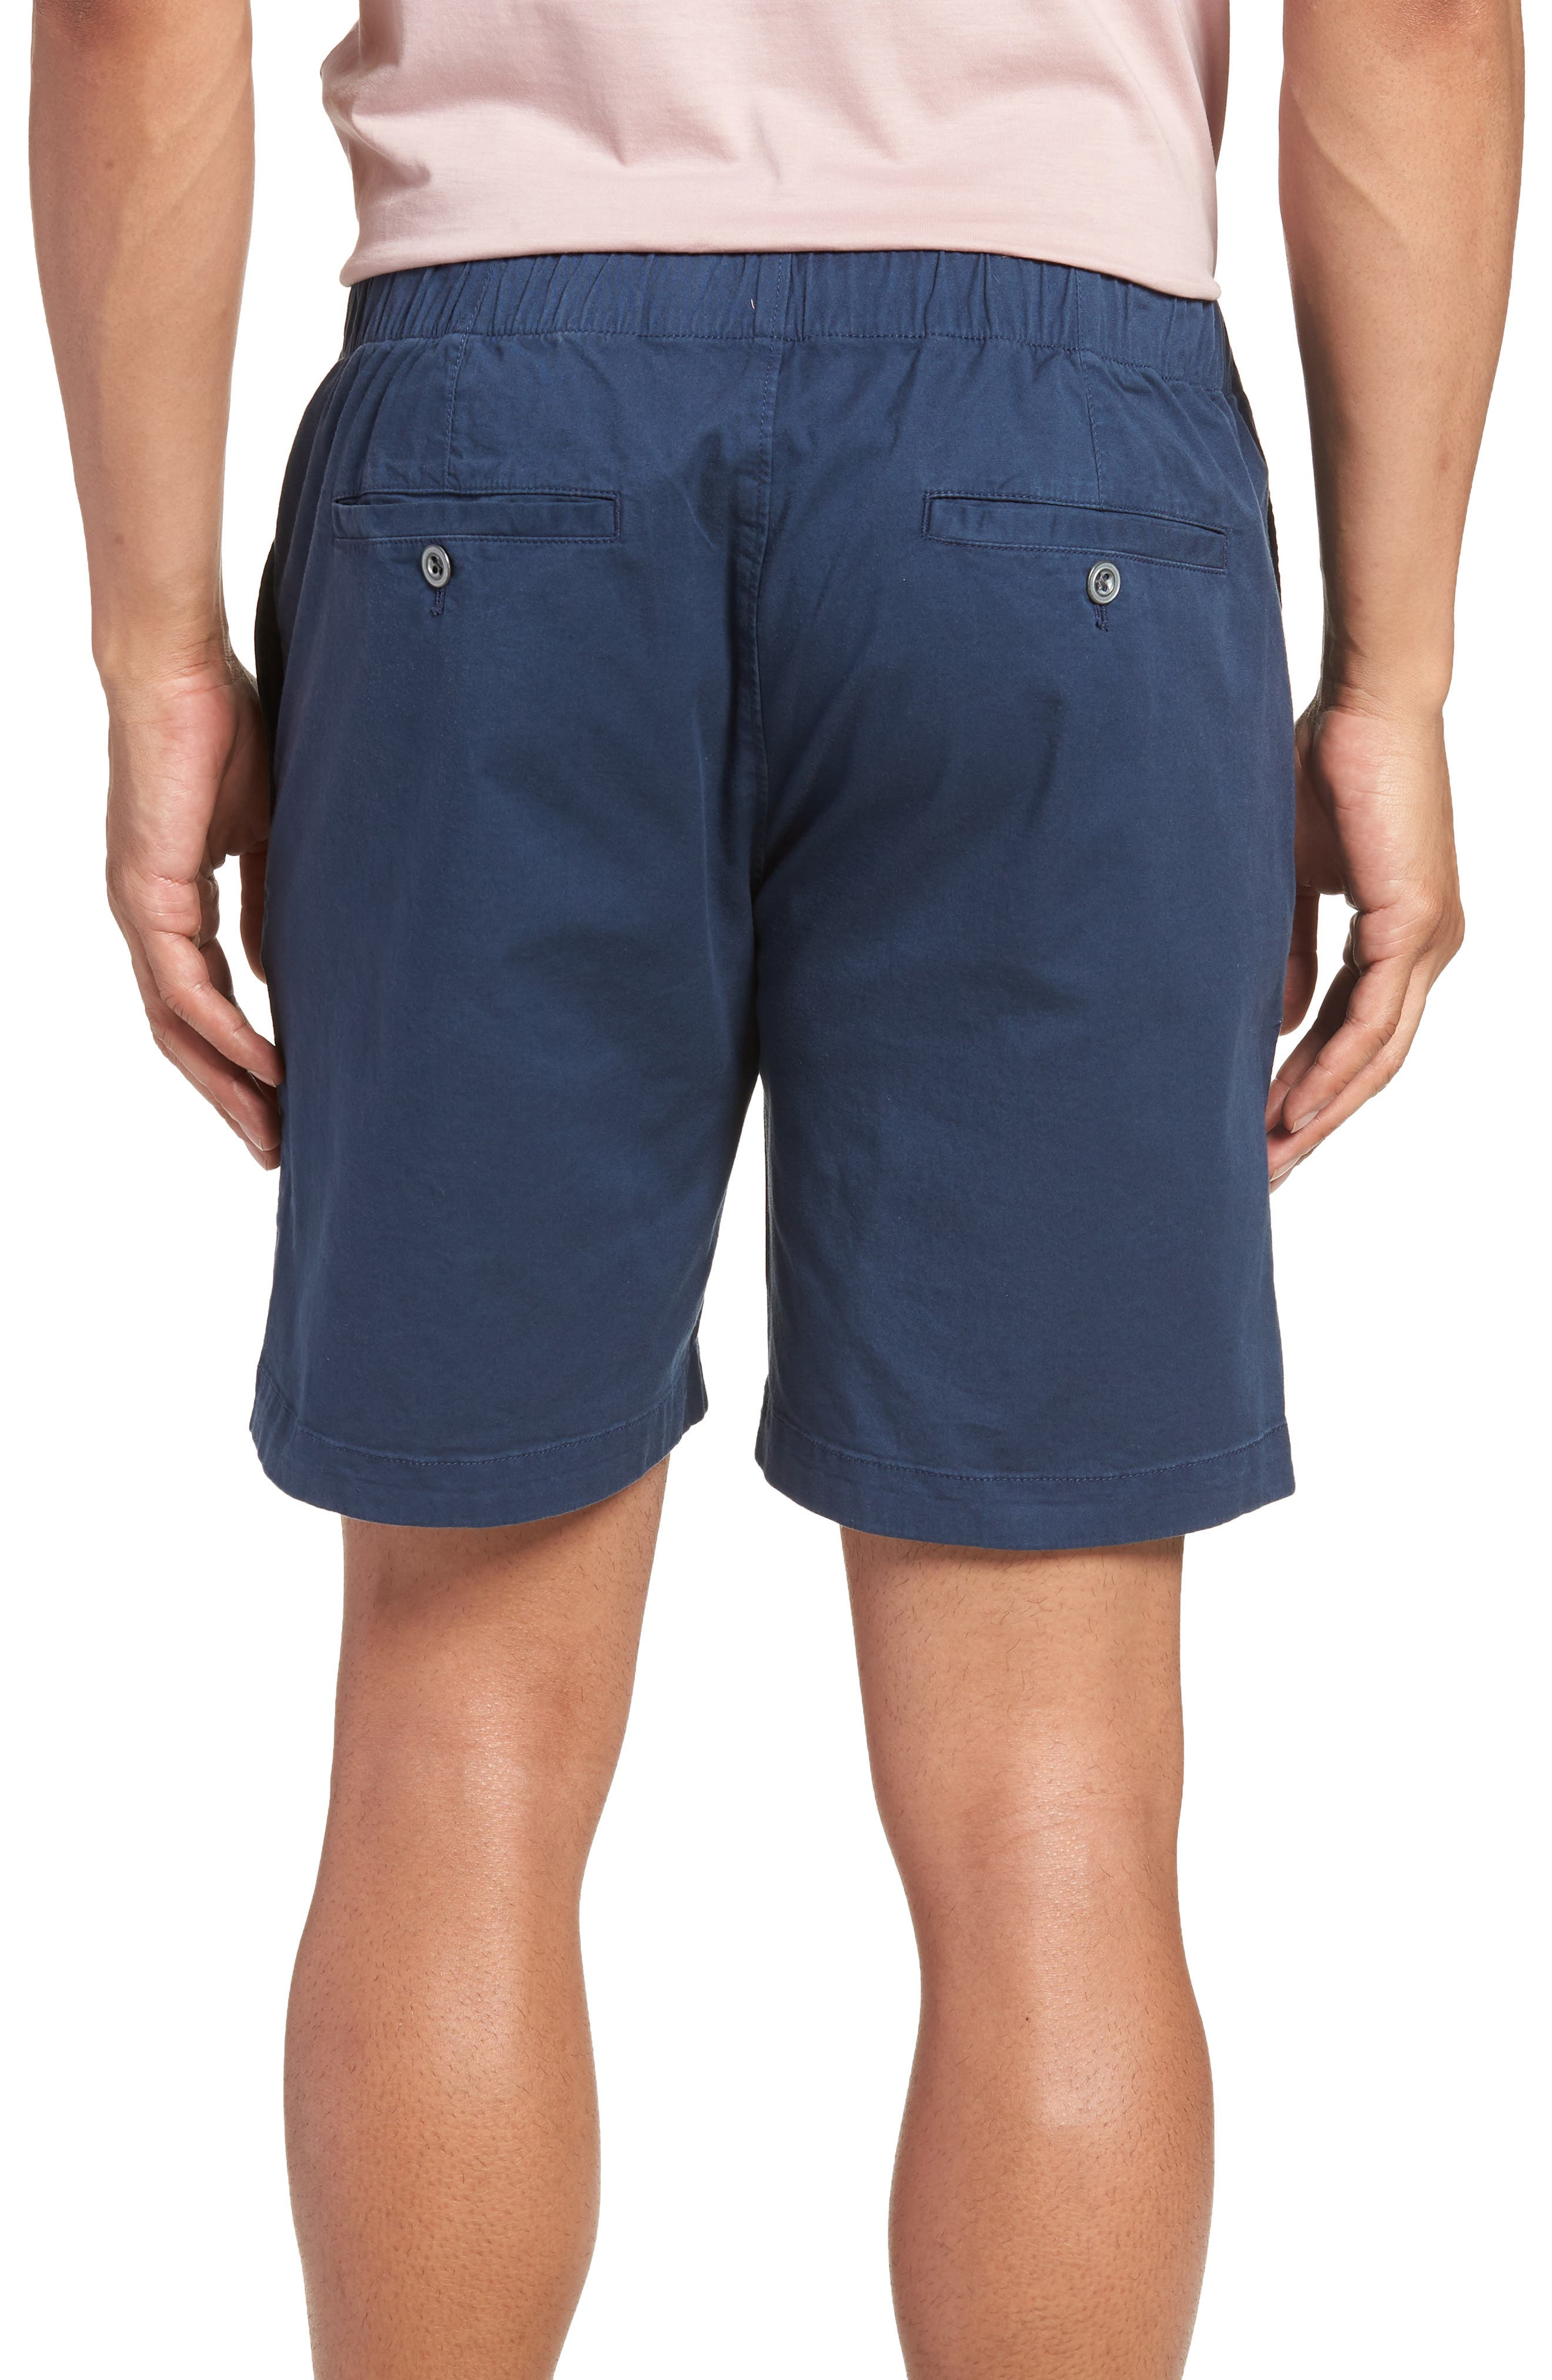 7-Inch Beach Shorts,                             Alternate thumbnail 8, color,